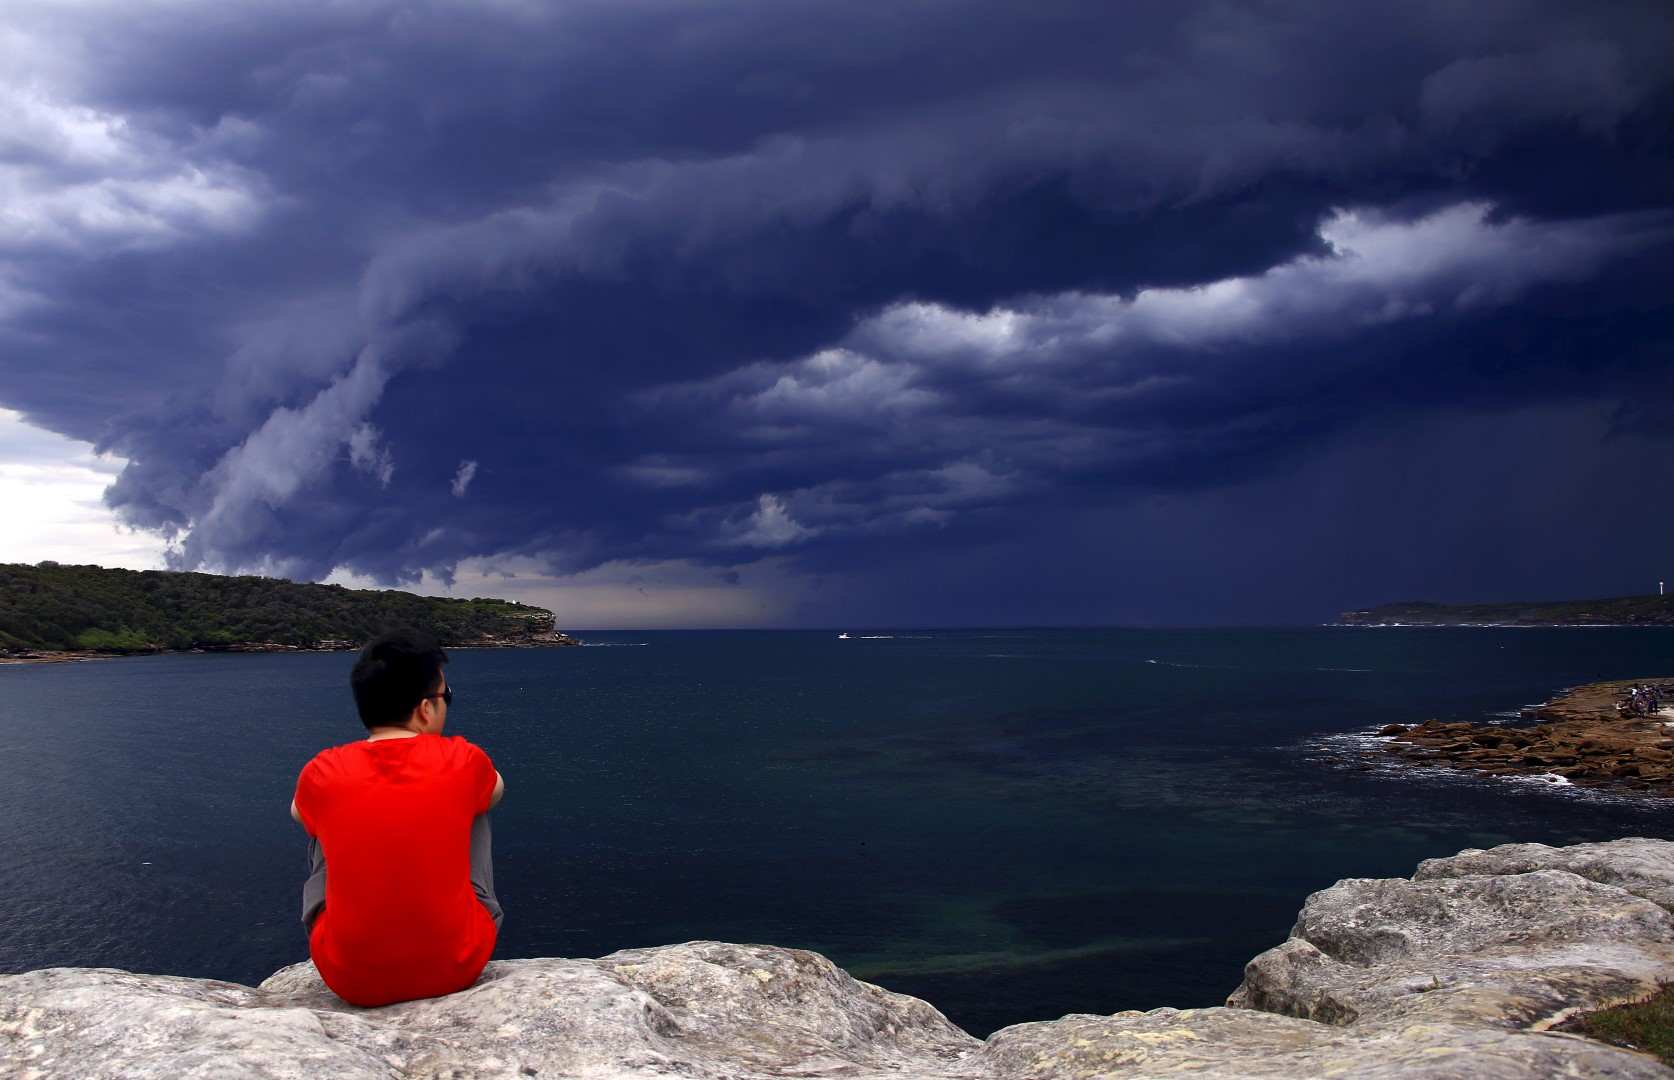 A Chinese tourist watches storm clouds moving along the coast towards the city of Sydney, Australia, November 6, 2015. Powerful storms swept across the city on Friday, with the Australian Bureau of Meteorology issuing a warning for severe thunderstorms with large hailstones, heavy rainfall and damaging winds, local media reported. REUTERS/David Gray - GF20000047792